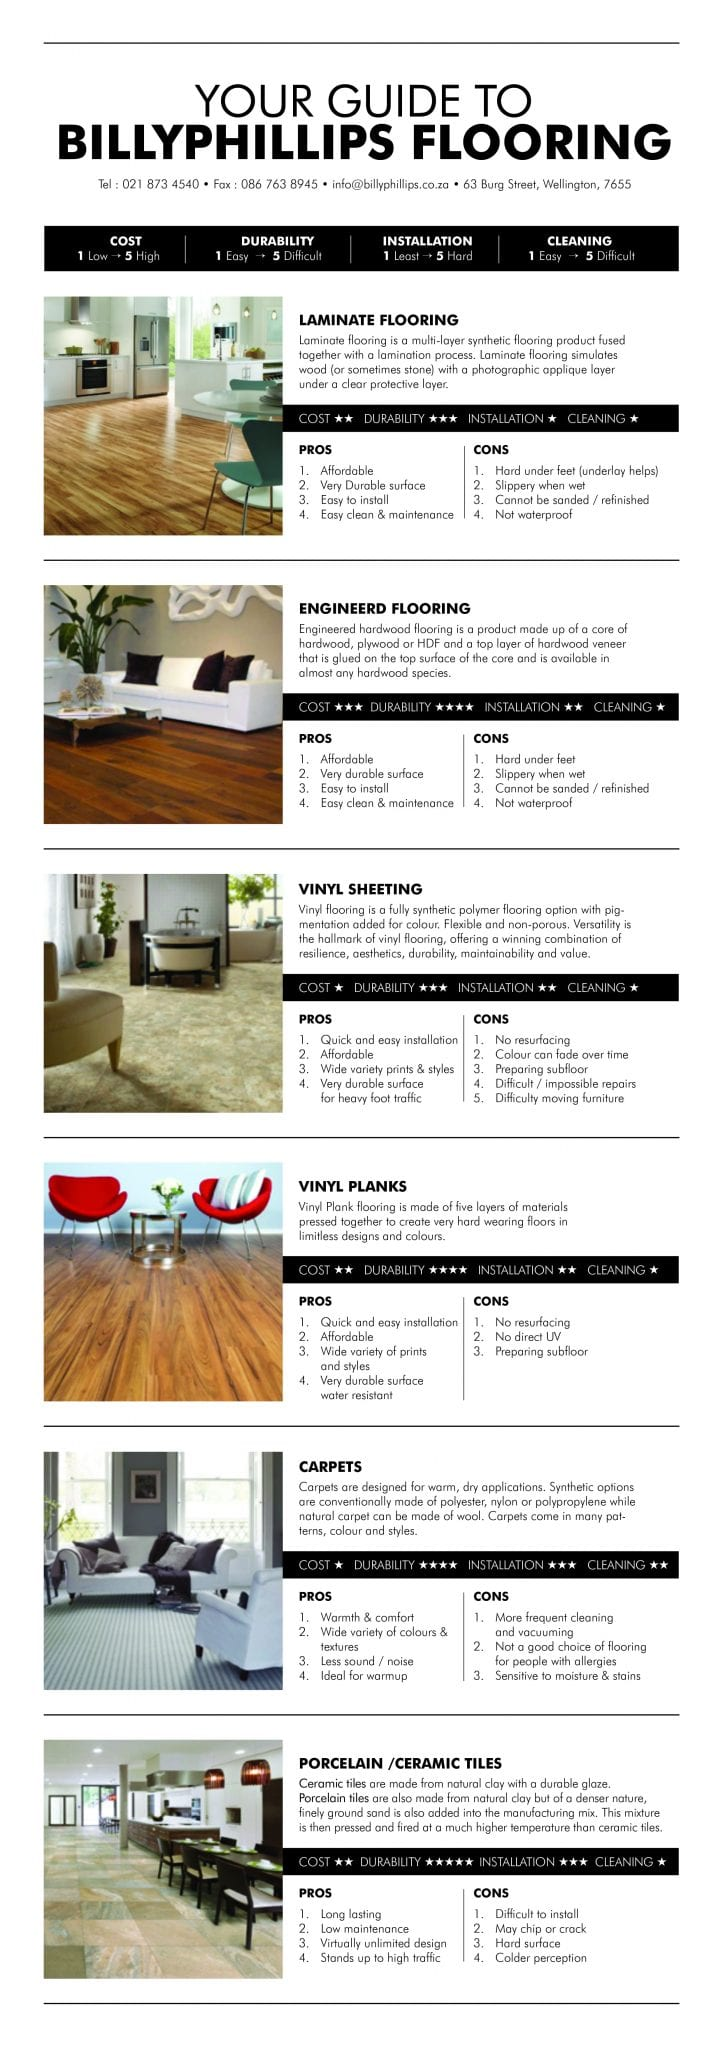 Billyphillips_flooring